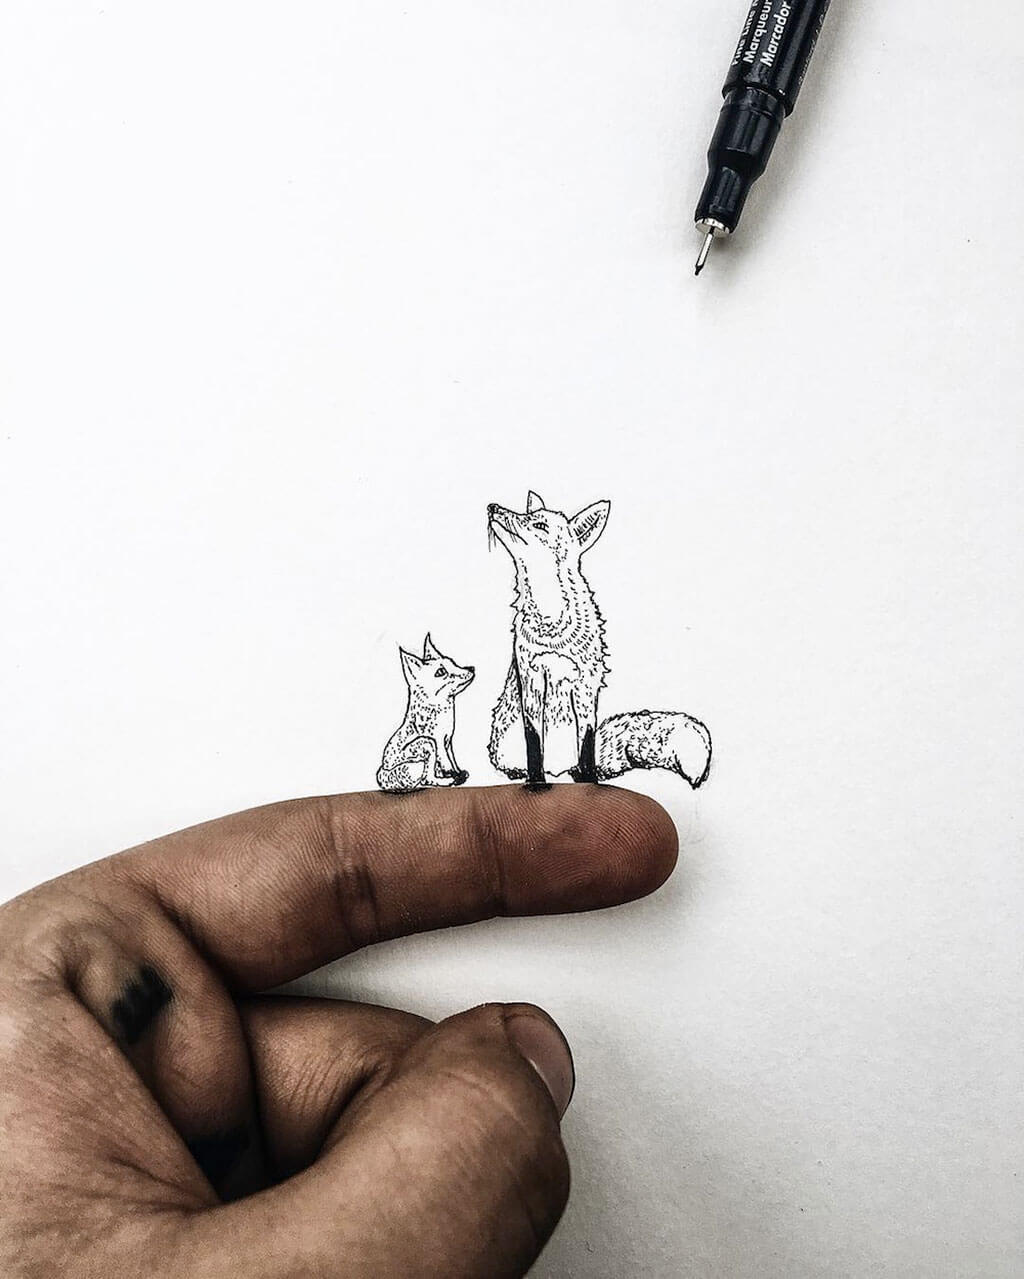 Tiny detailed illustrations the size of pencil tops